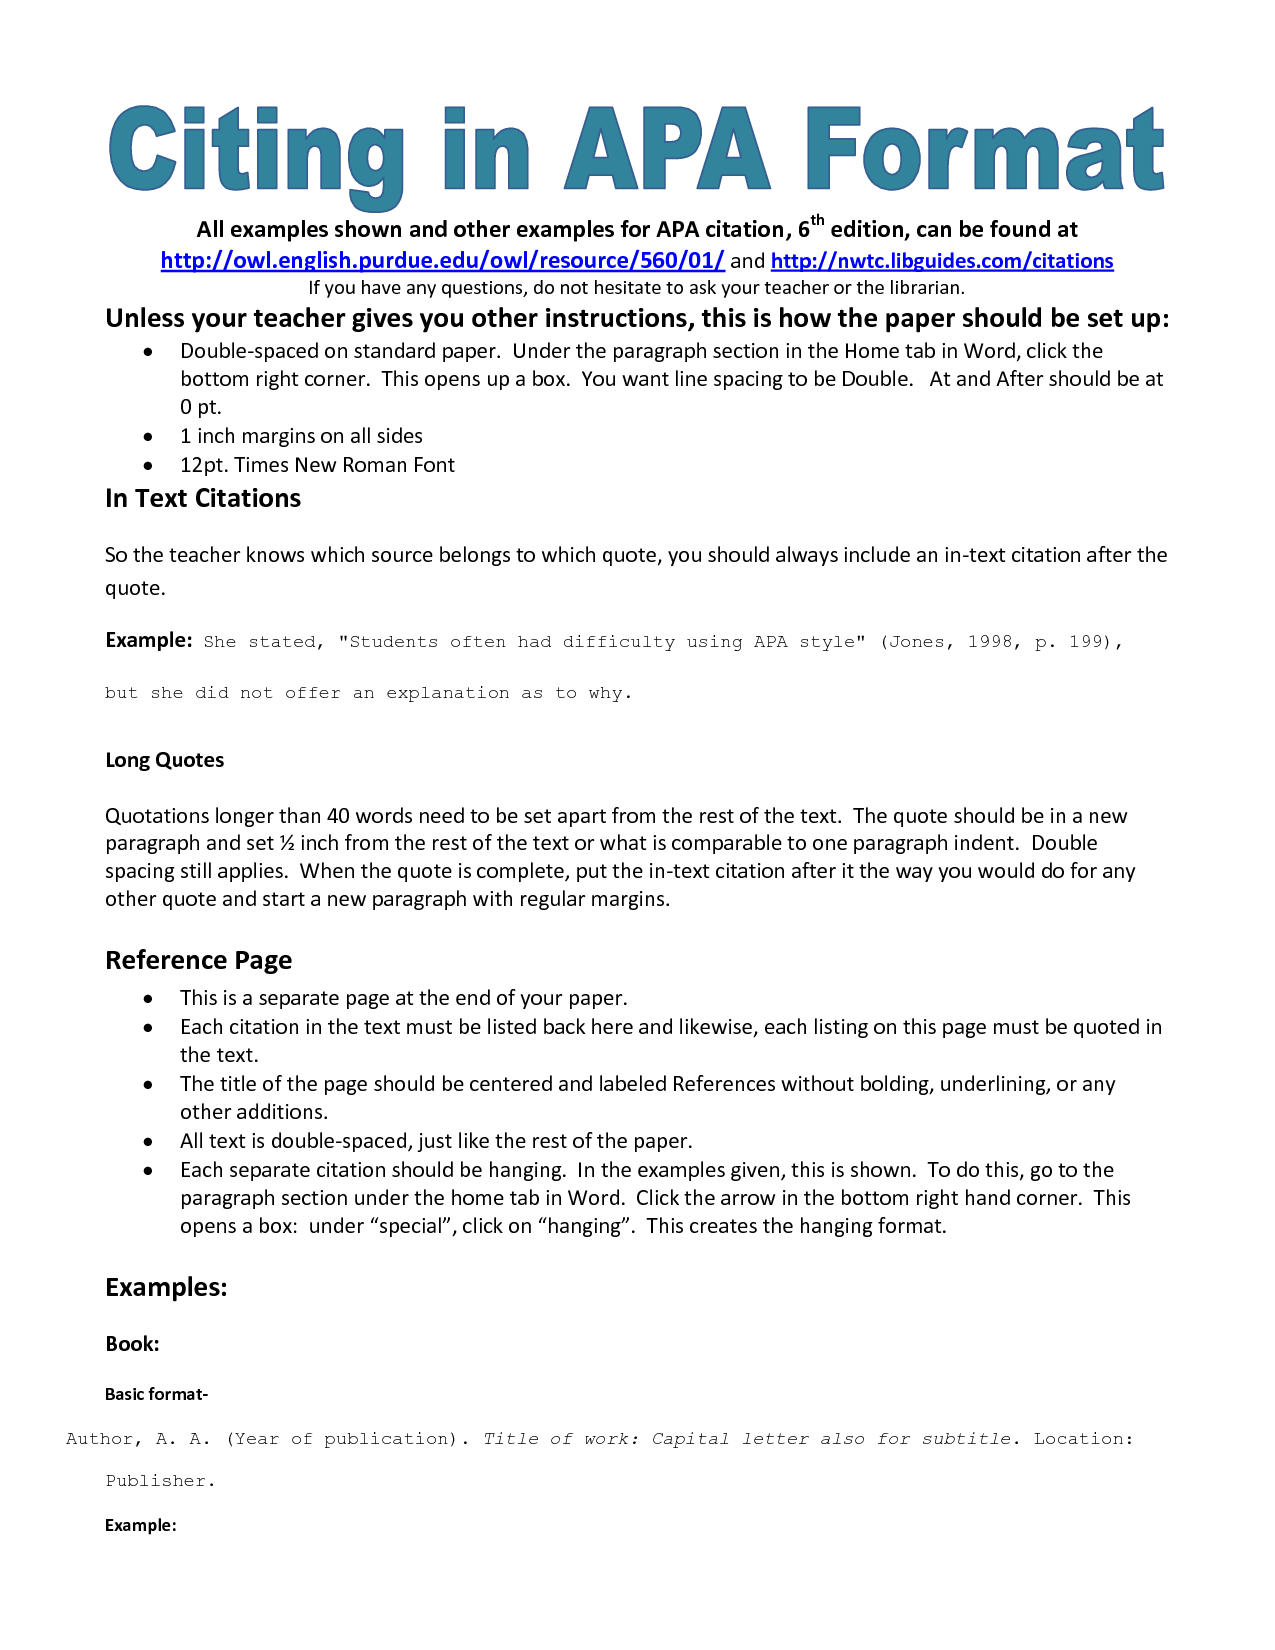 006 Essay Example In Apa Format Shocking Papers Written Research Paper Full